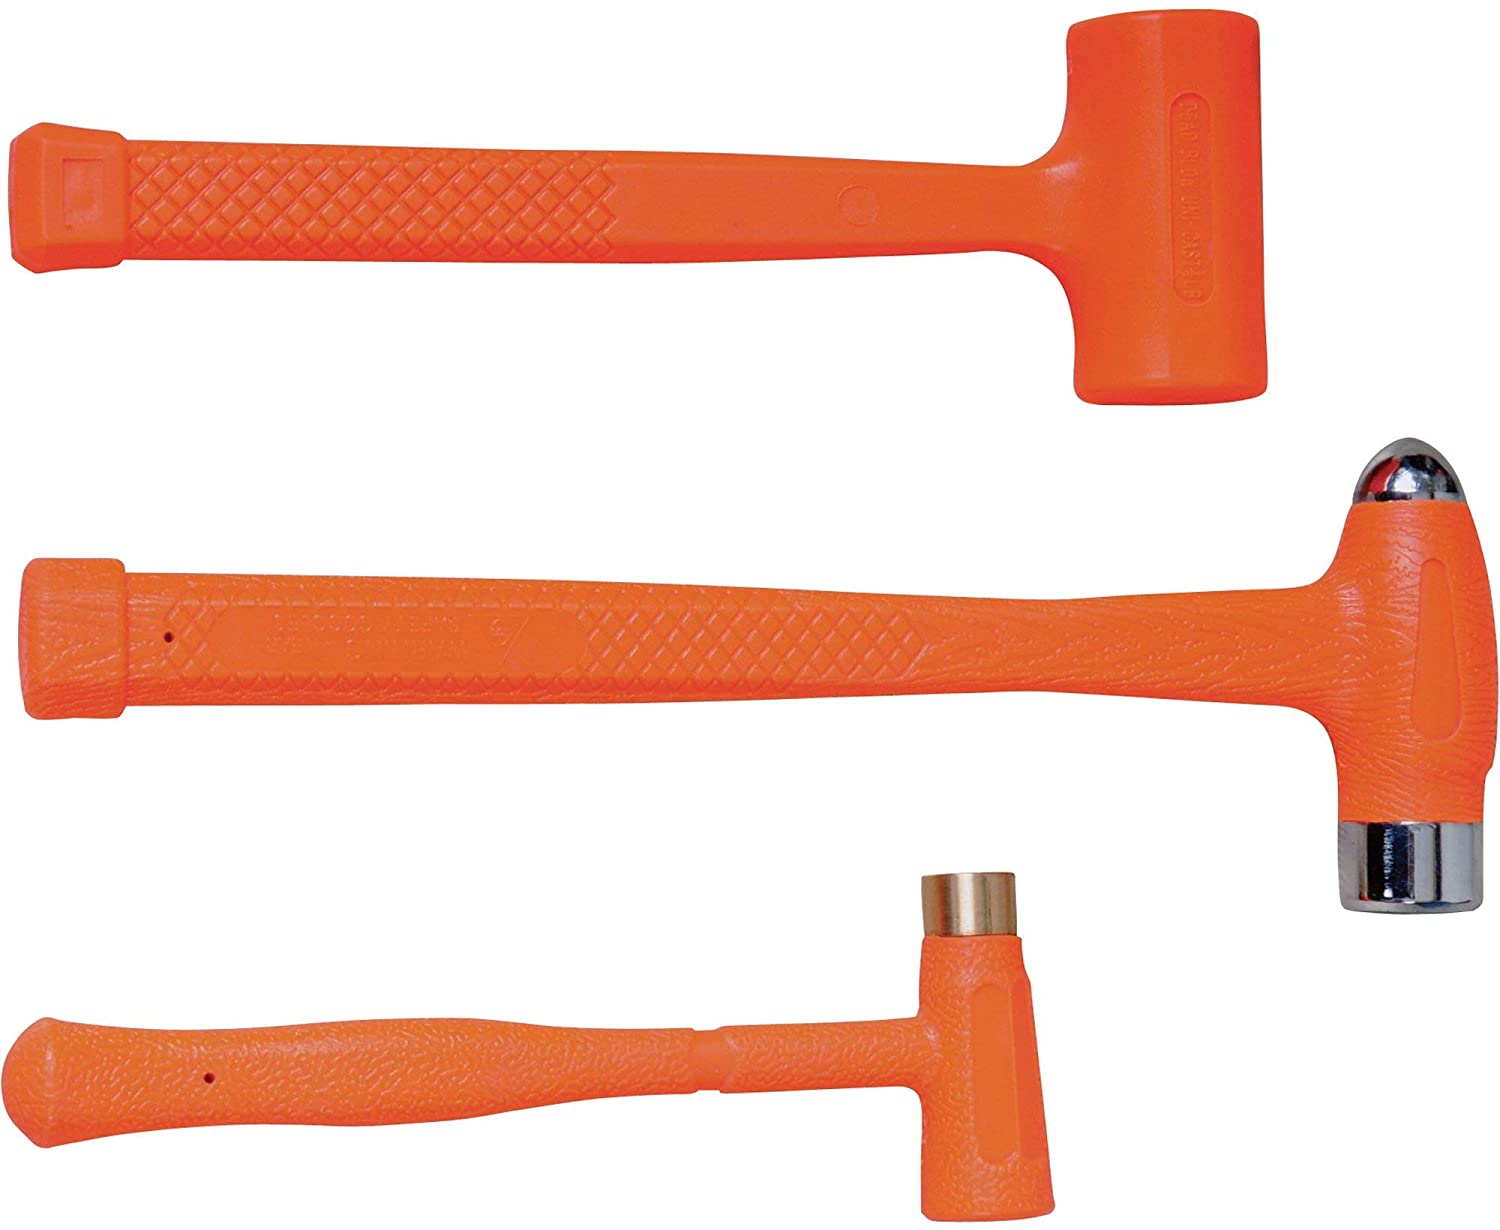 Ironton Hammer Set - 3-Pc.